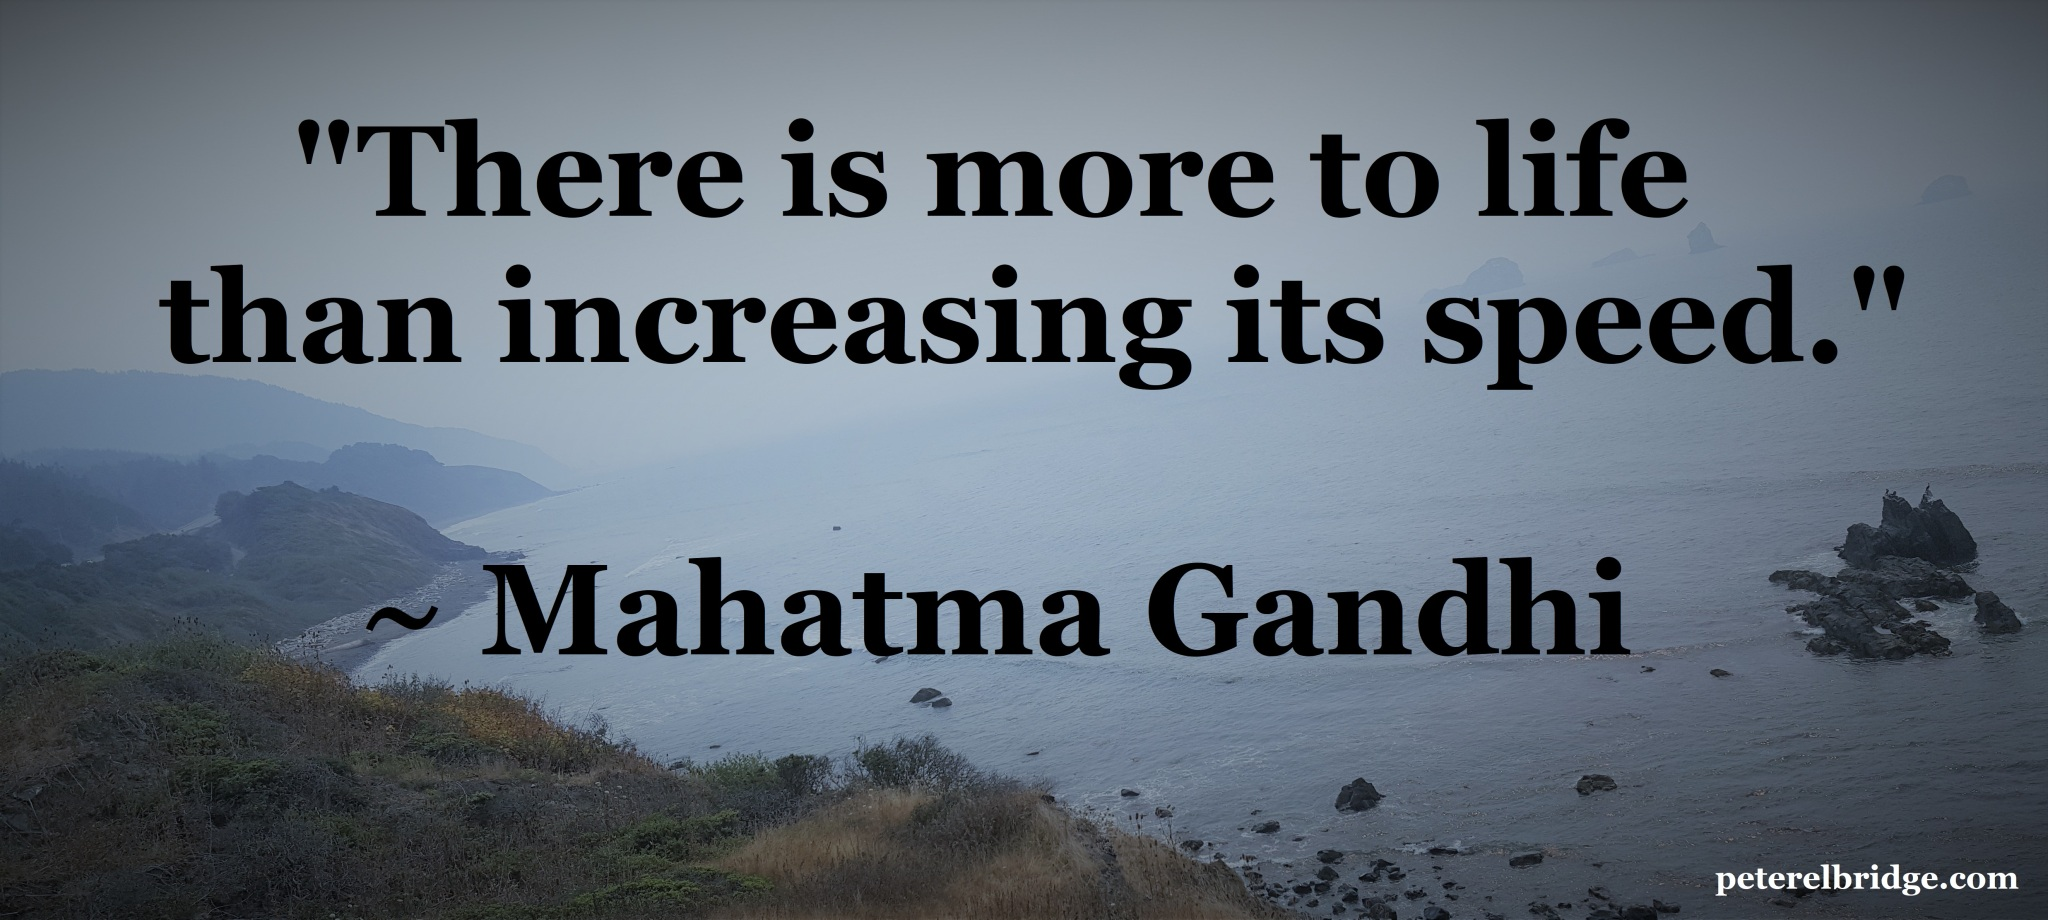 Mahatma Gandhi - more to life than increasing speed